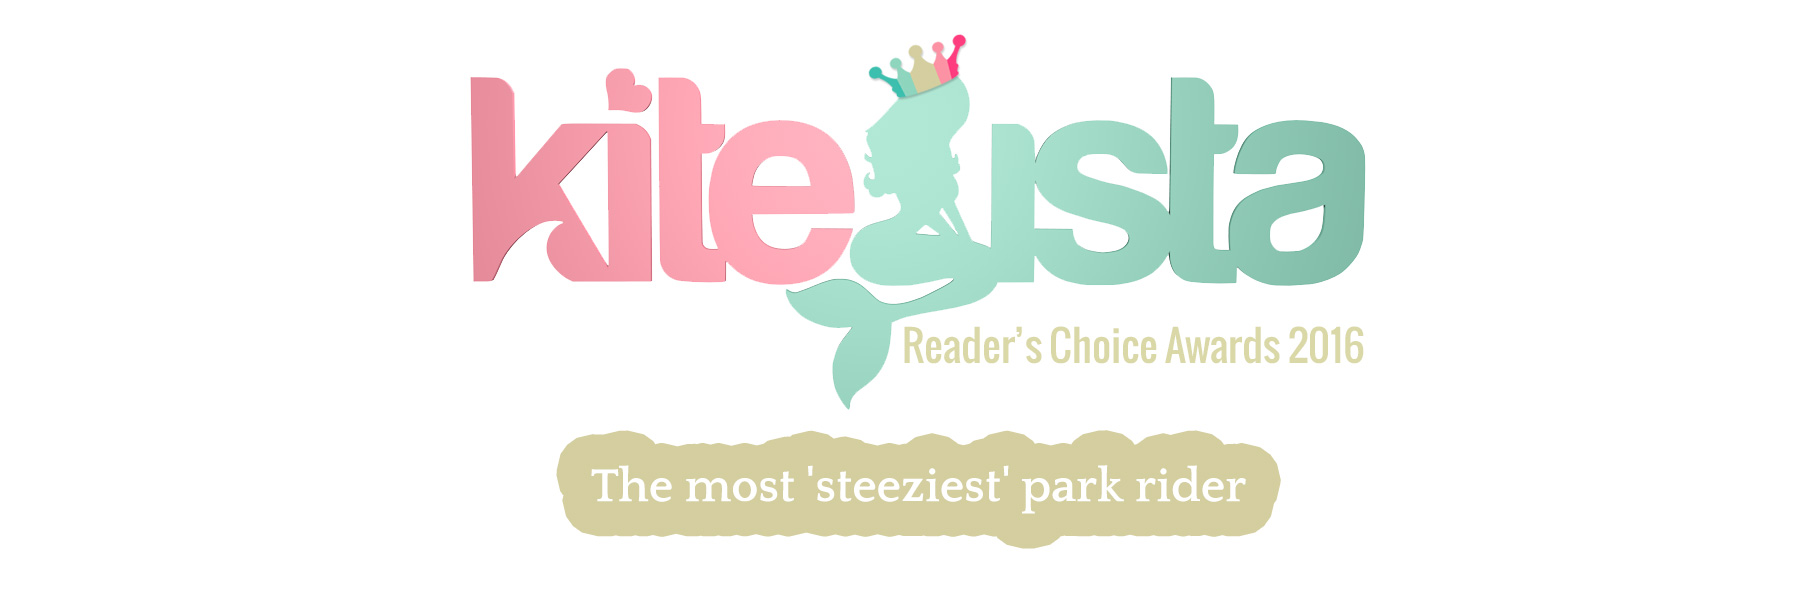 The Most 'Steeziest' Park Rider – 2016 Reader's Choice Awards